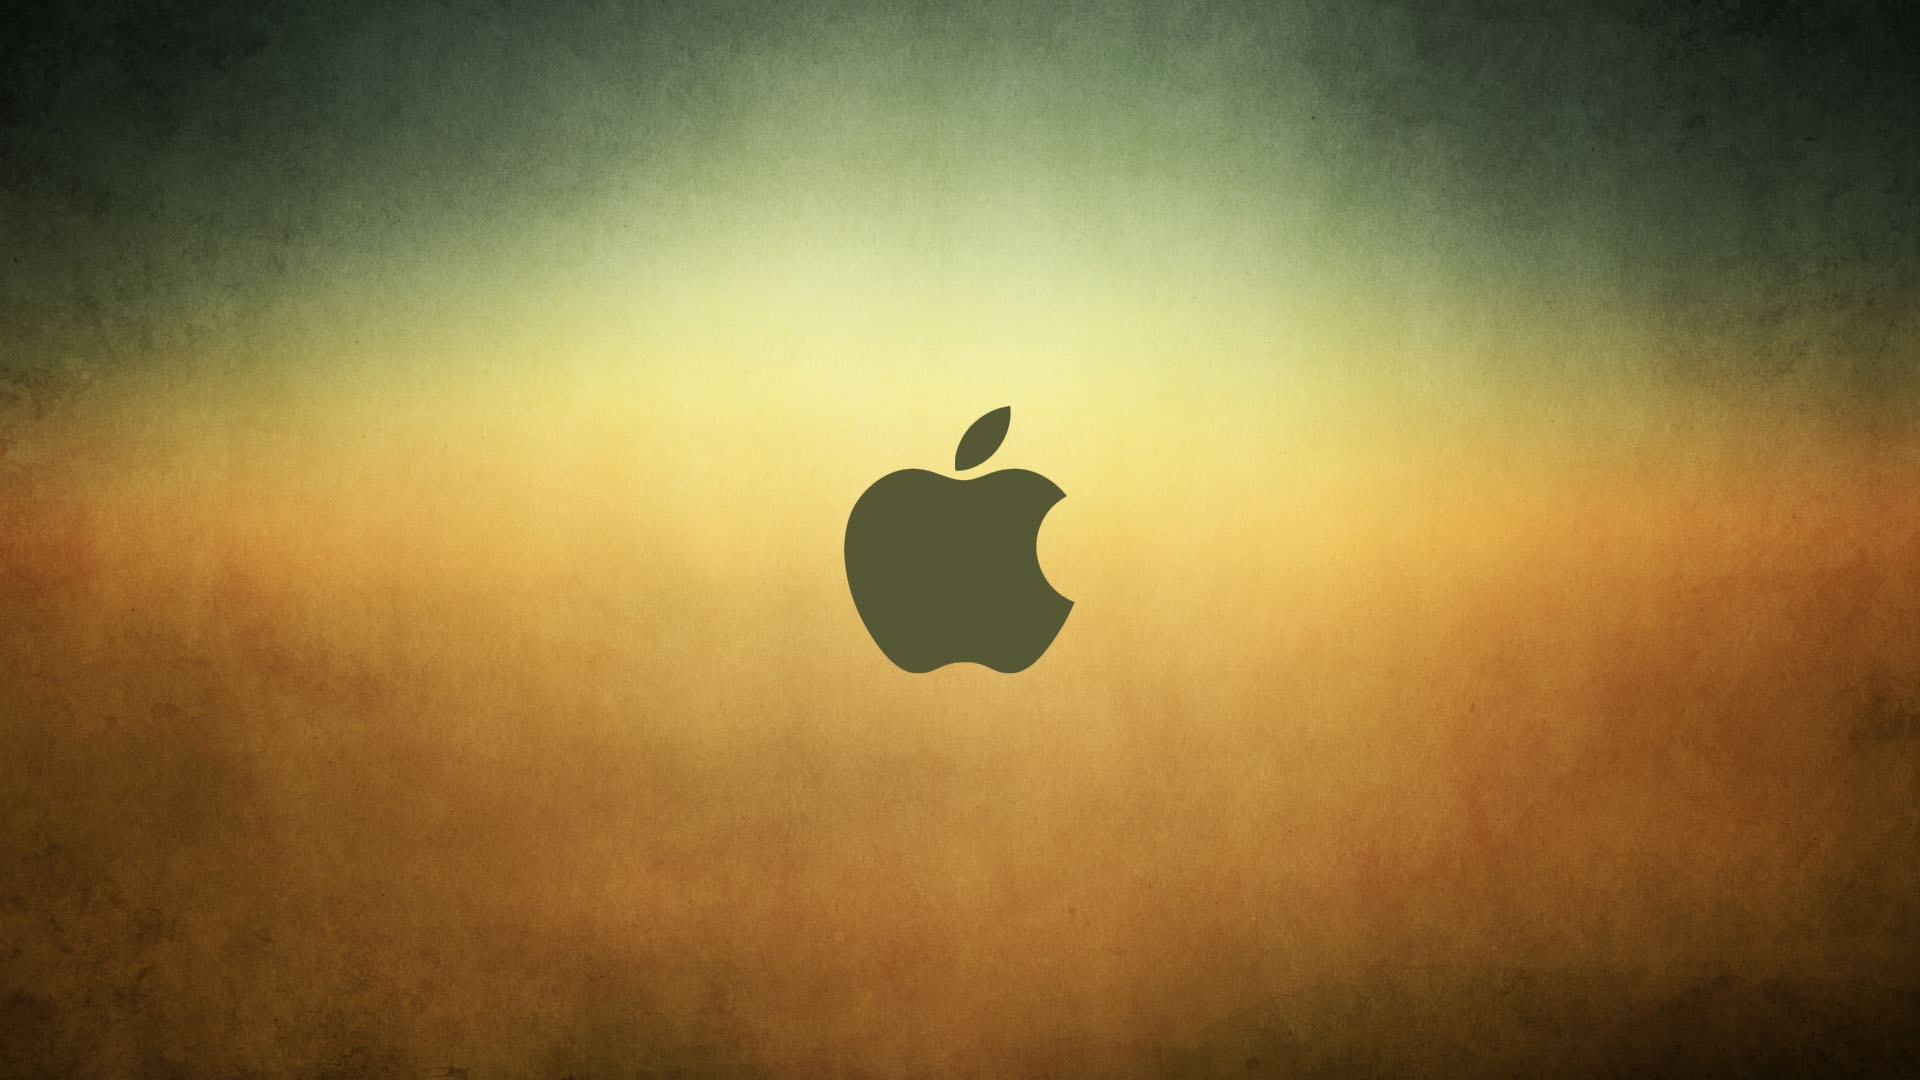 apple_new_2012-1920x1080.jpg